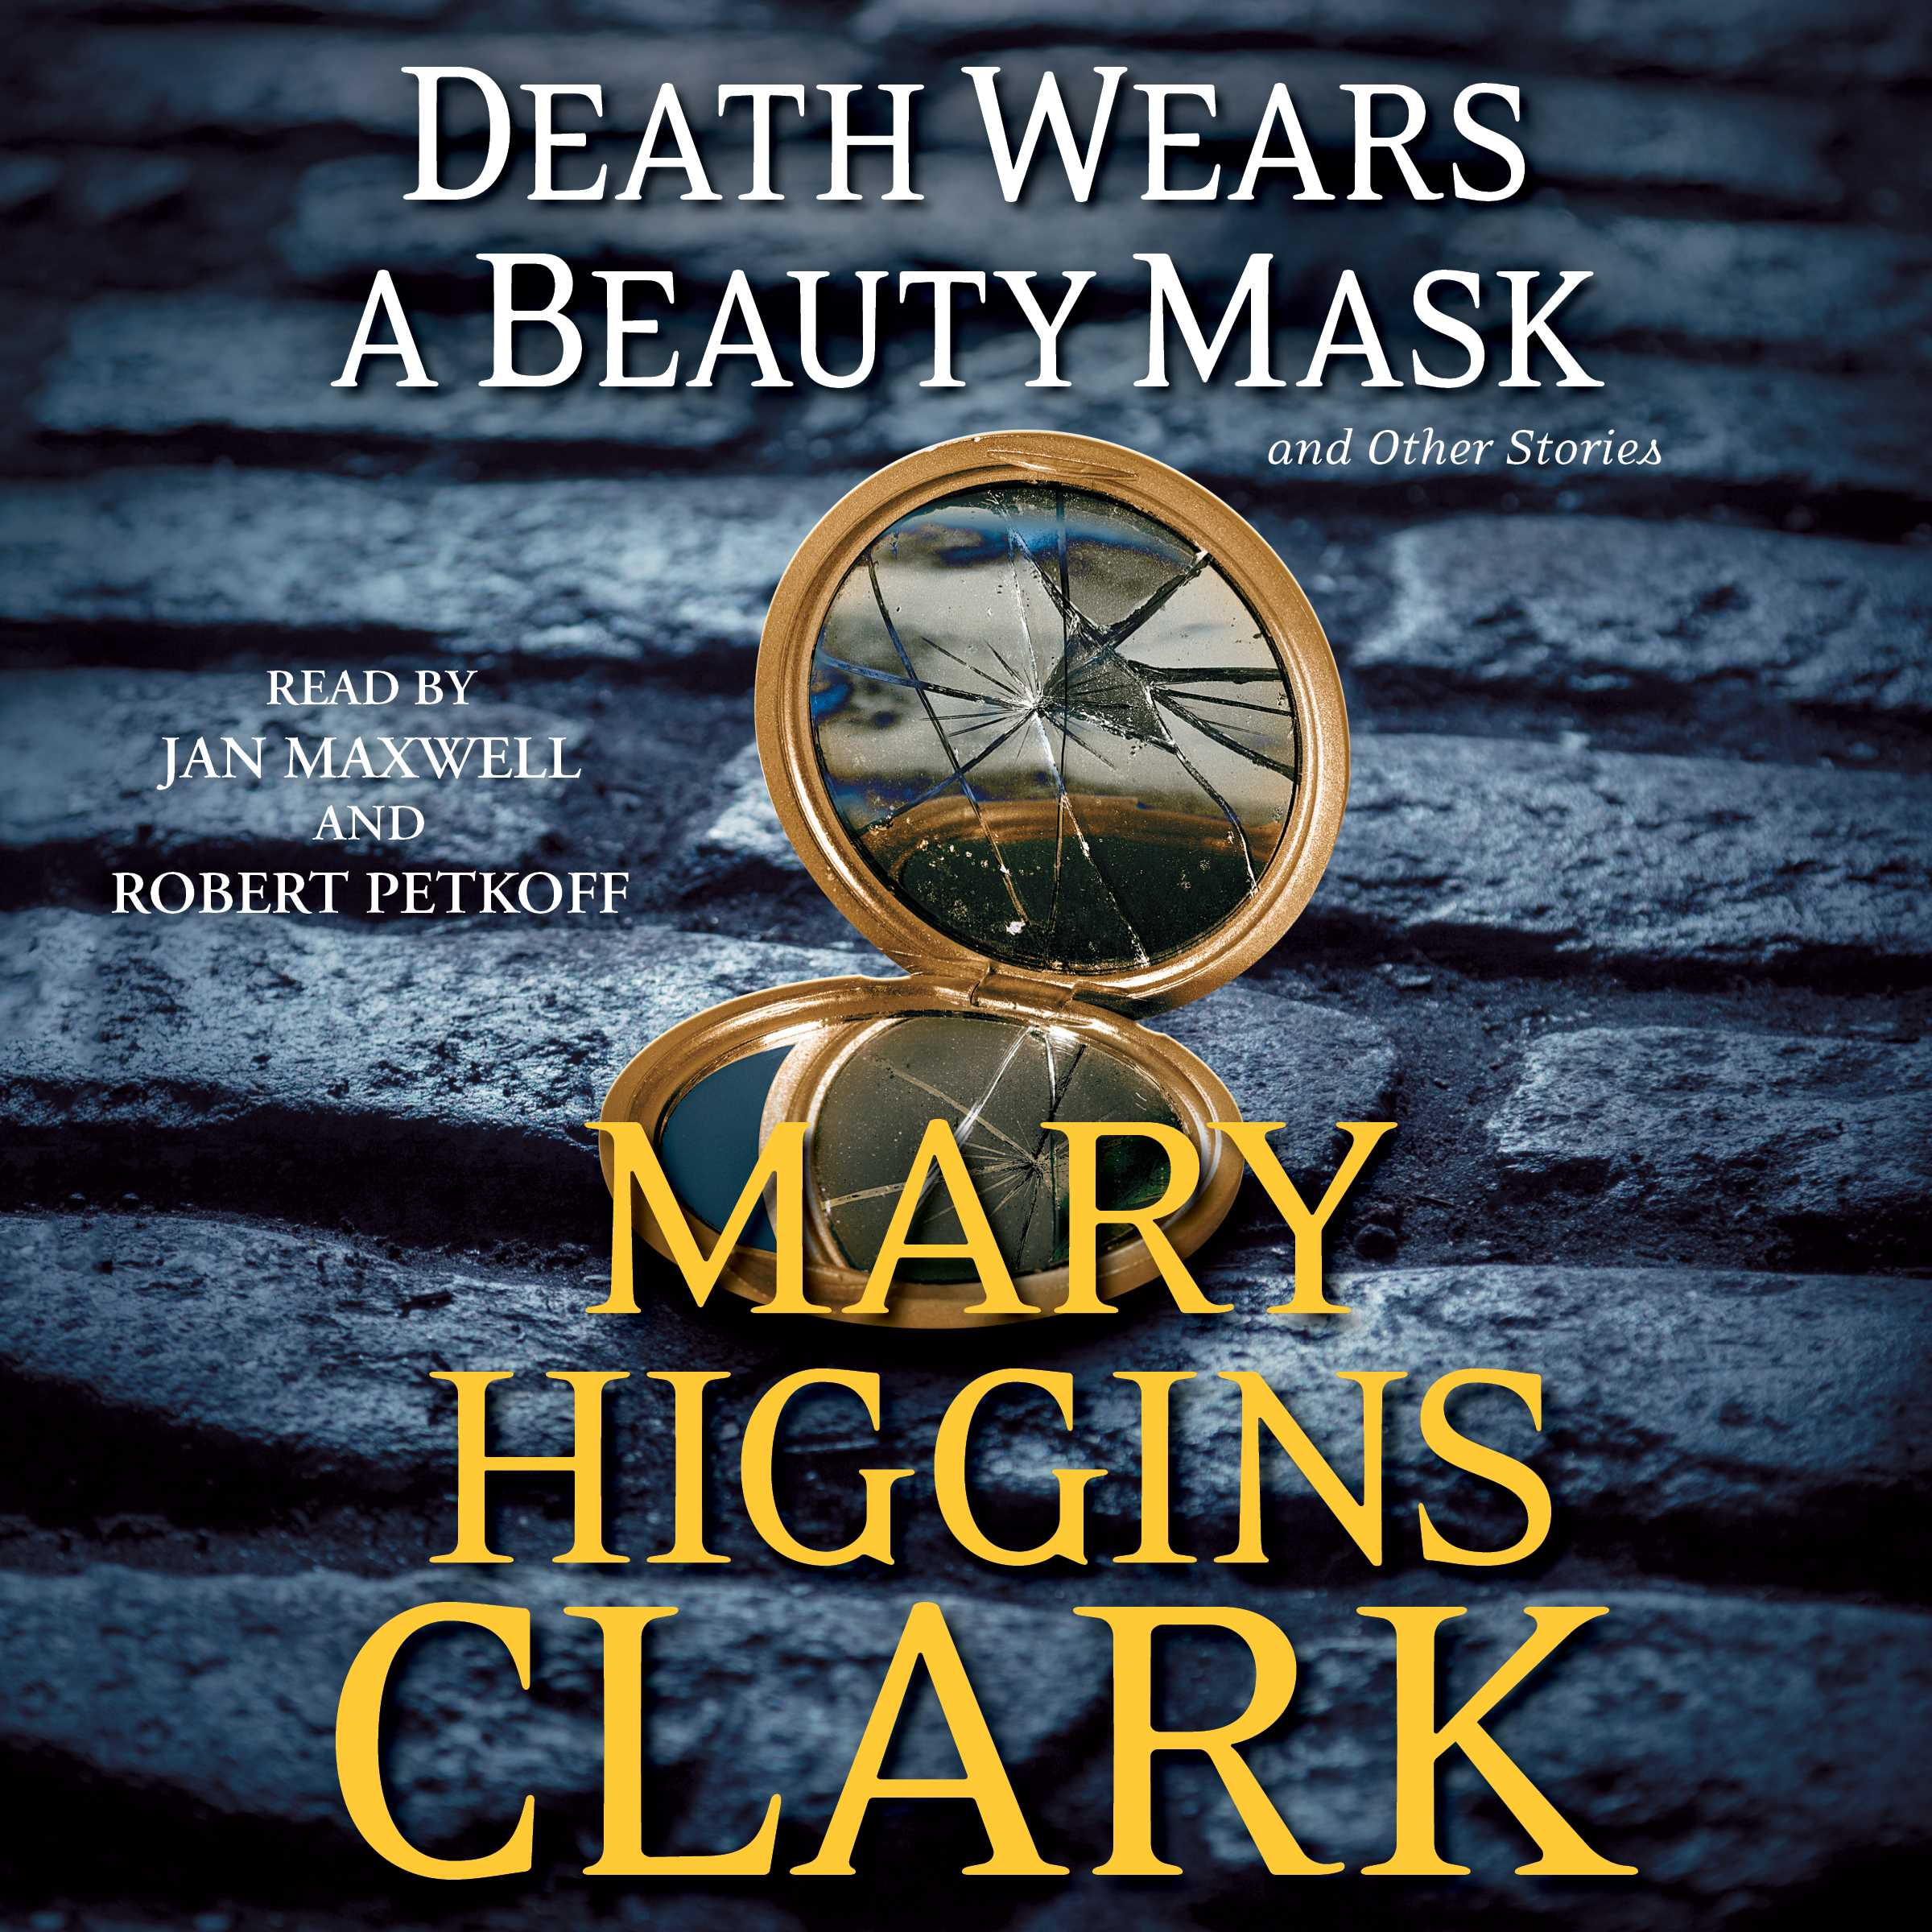 Death wears a beauty mask and other stories 9781442387072 hr